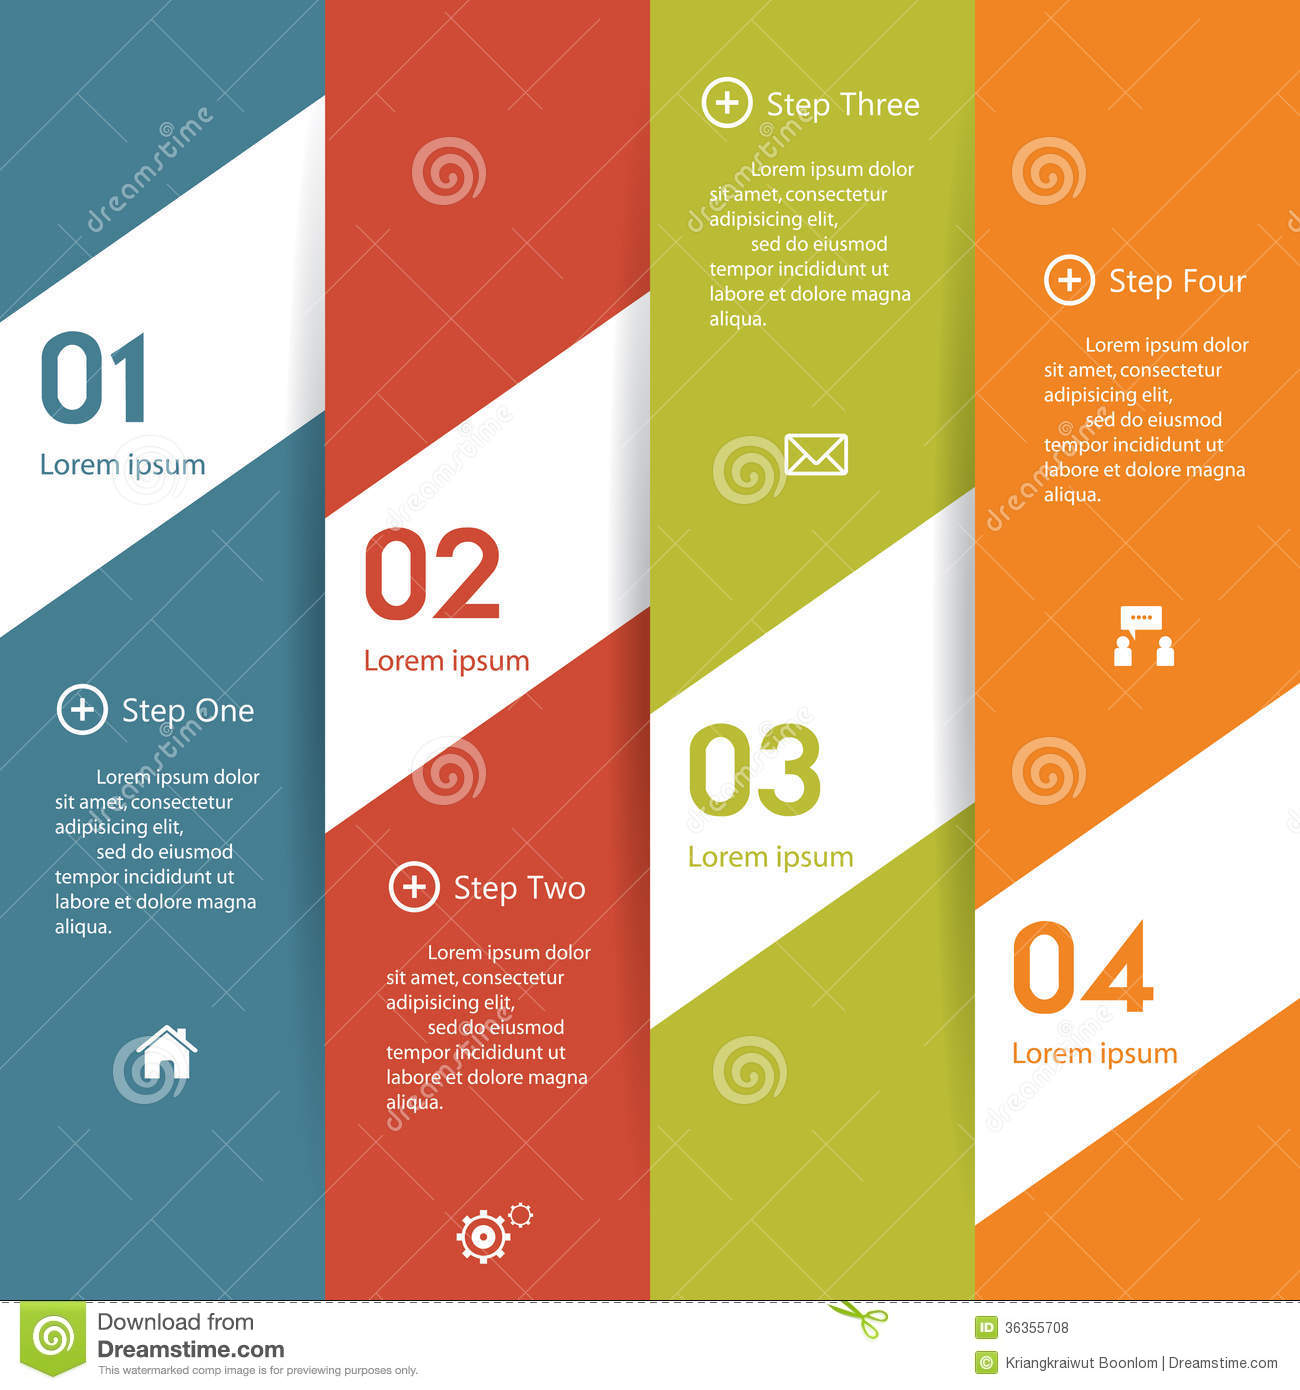 Design clean number banners templategraphic or website layout Vector y1ziVqOv